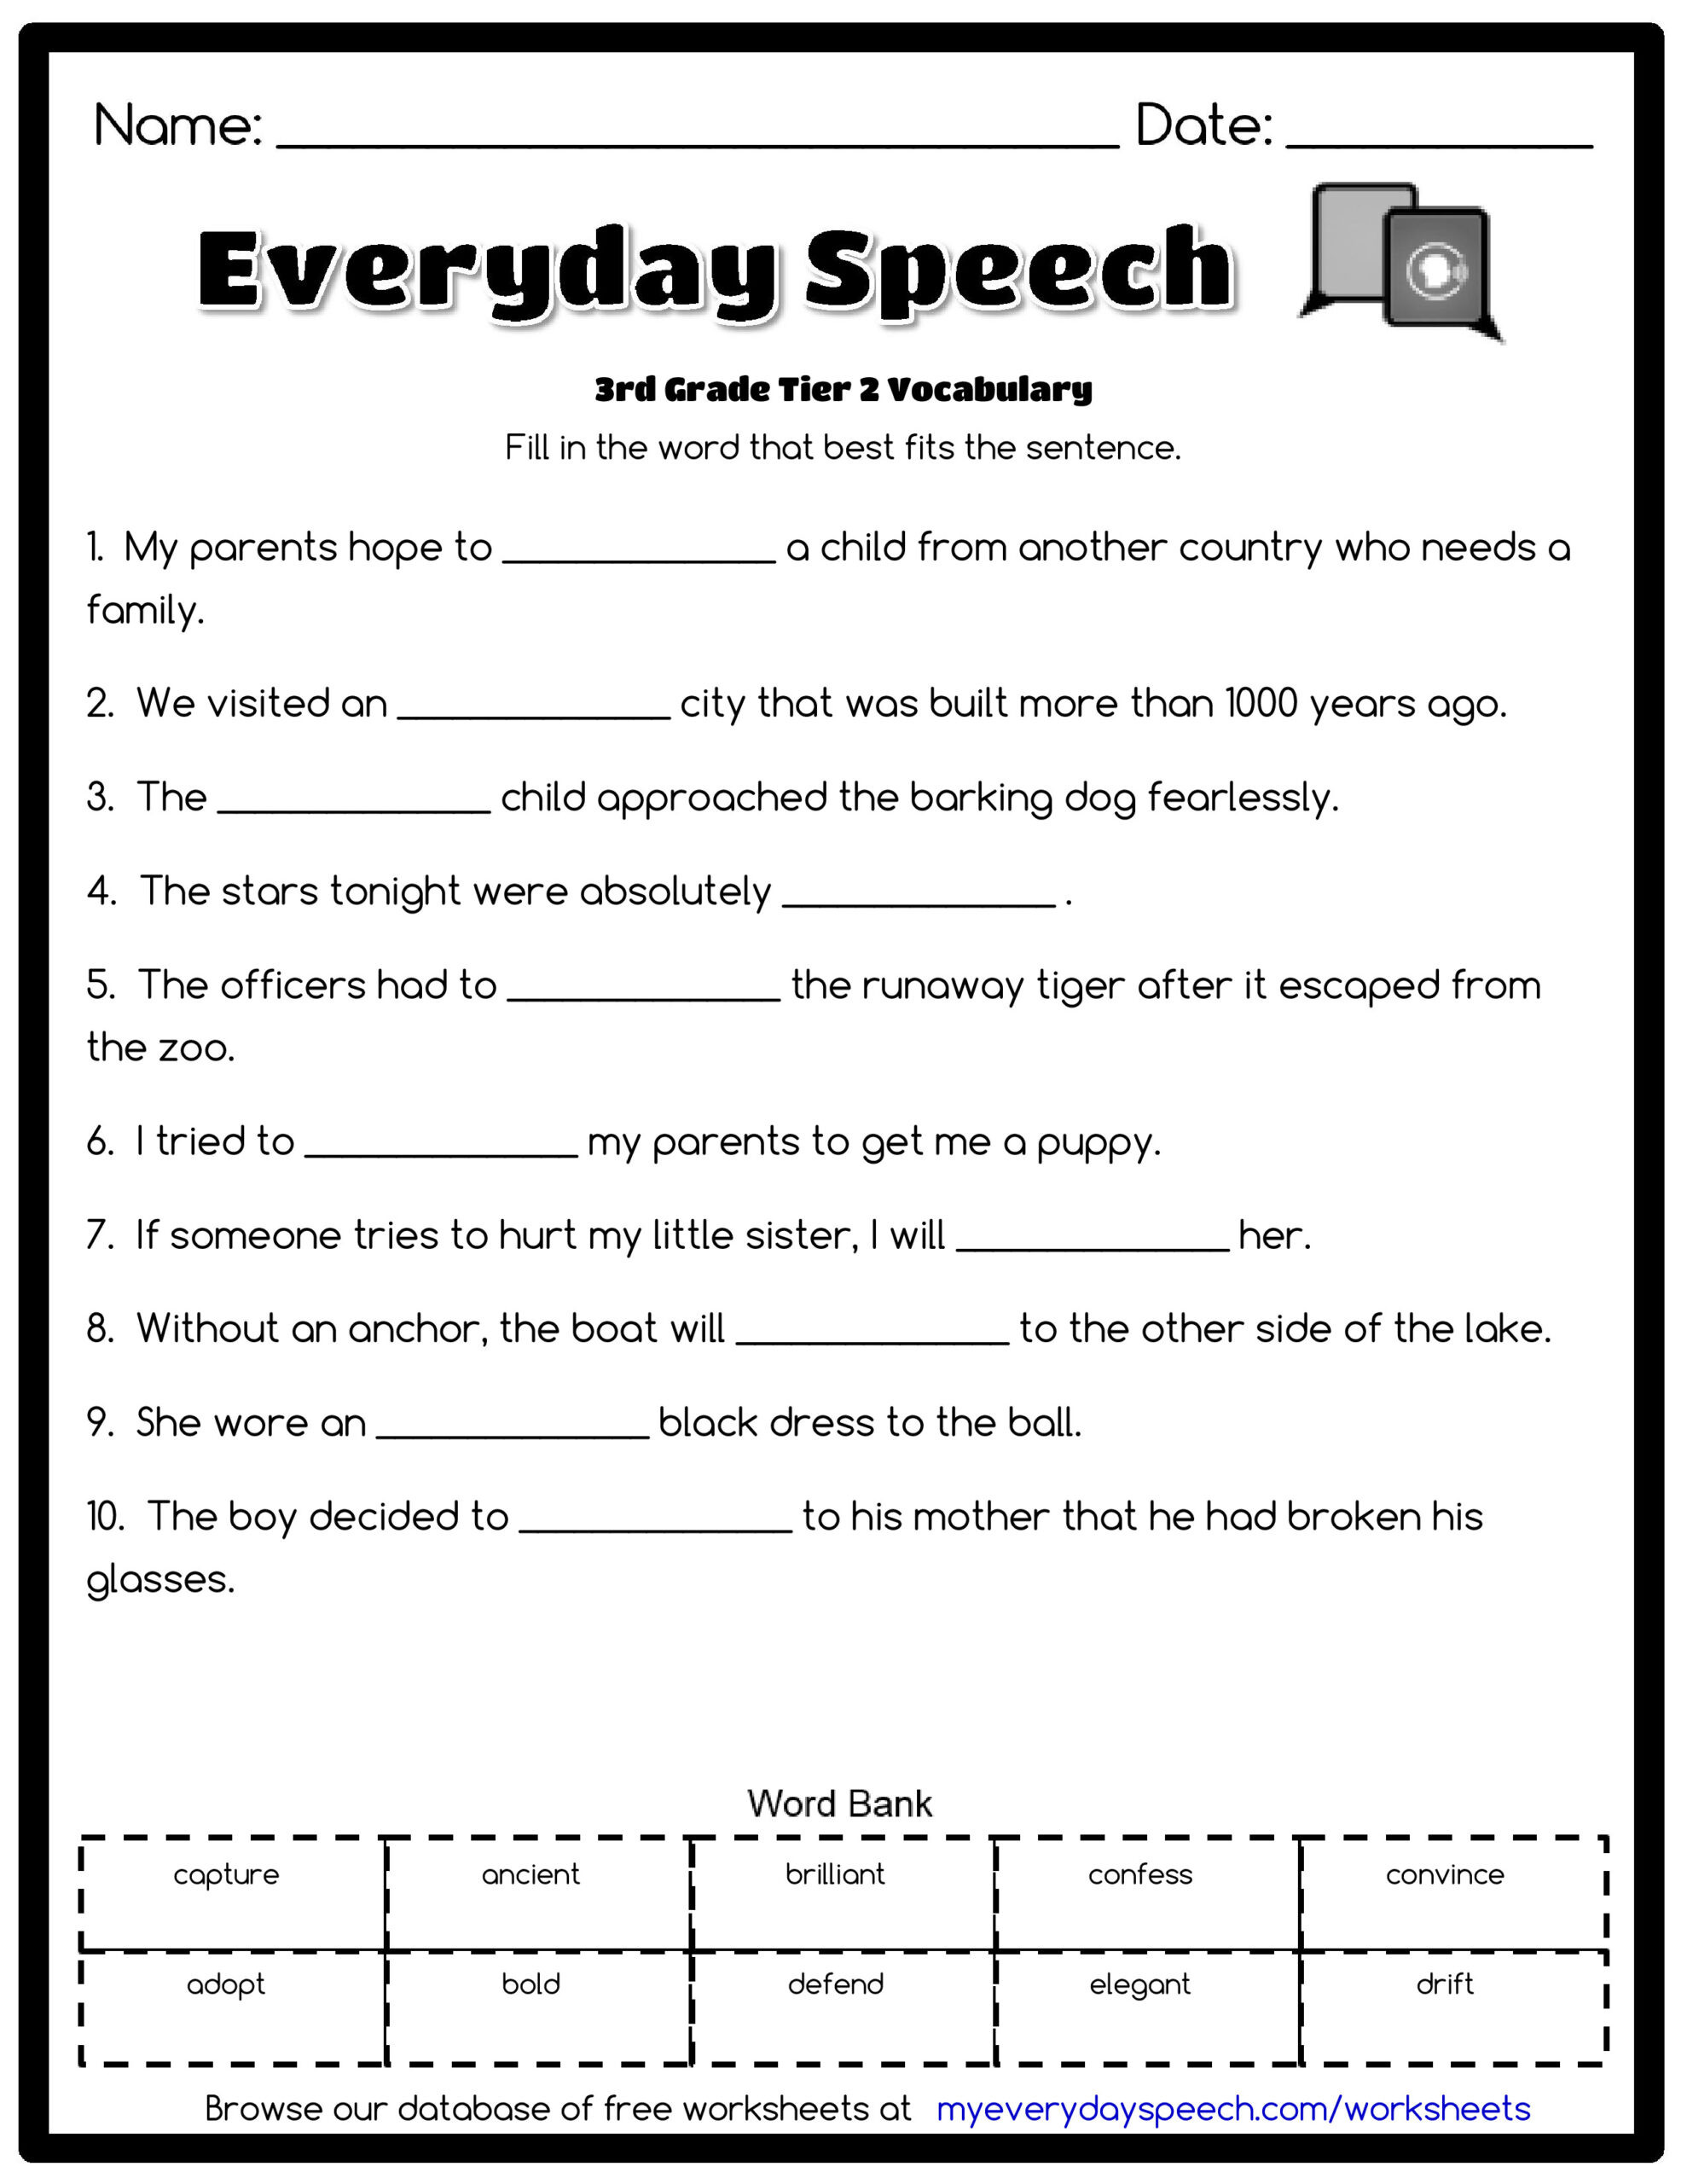 Subject Worksheets 3rd Grade 3rd Grade Vocabulary Worksheets for Third Mathematical